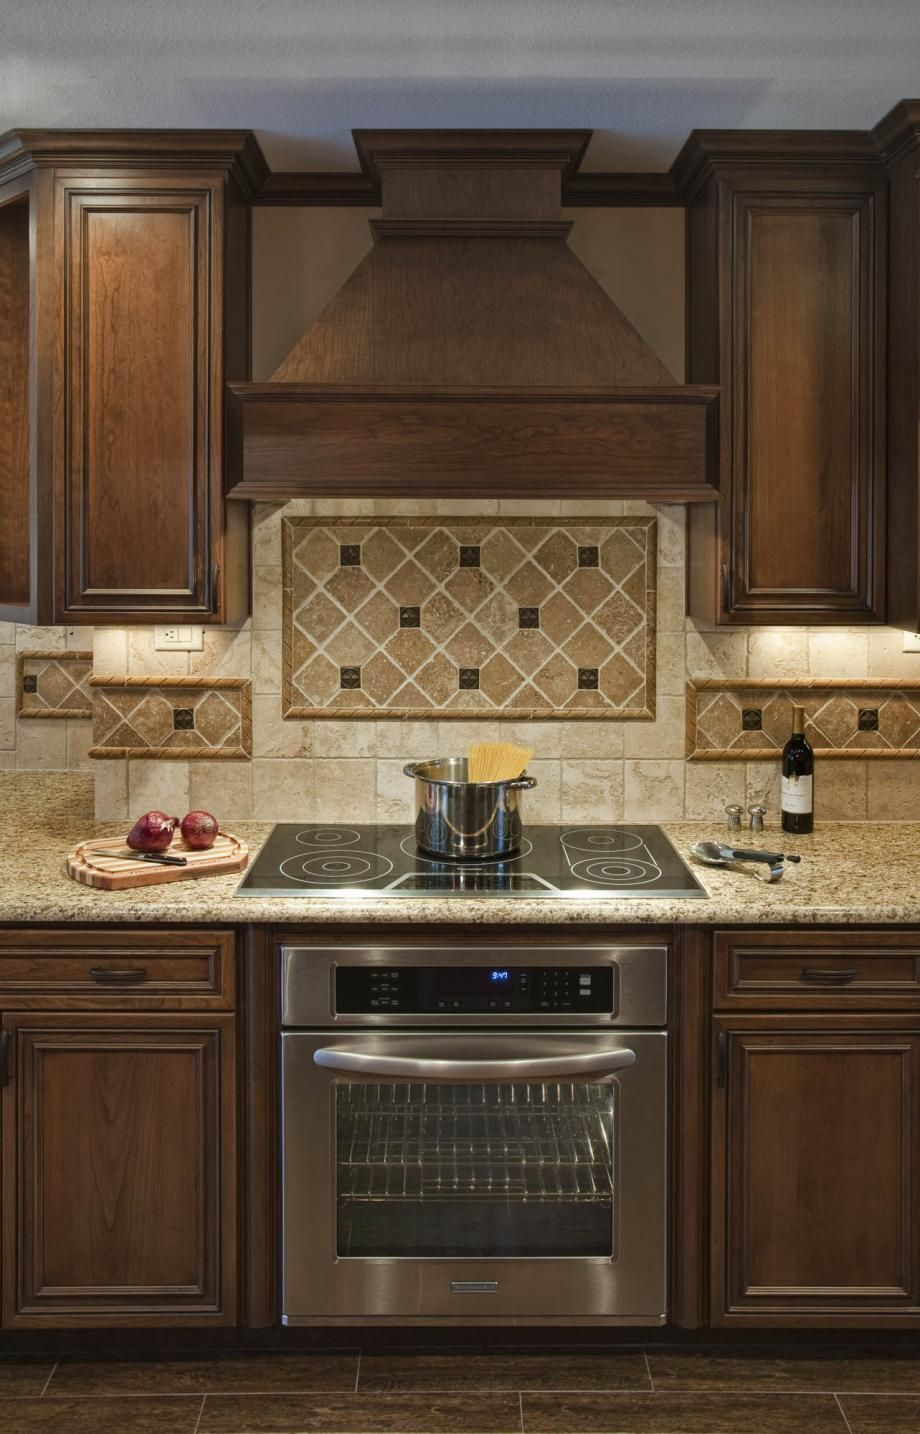 Backsplash ideas for under range hood tops along for Vent hoods for kitchens